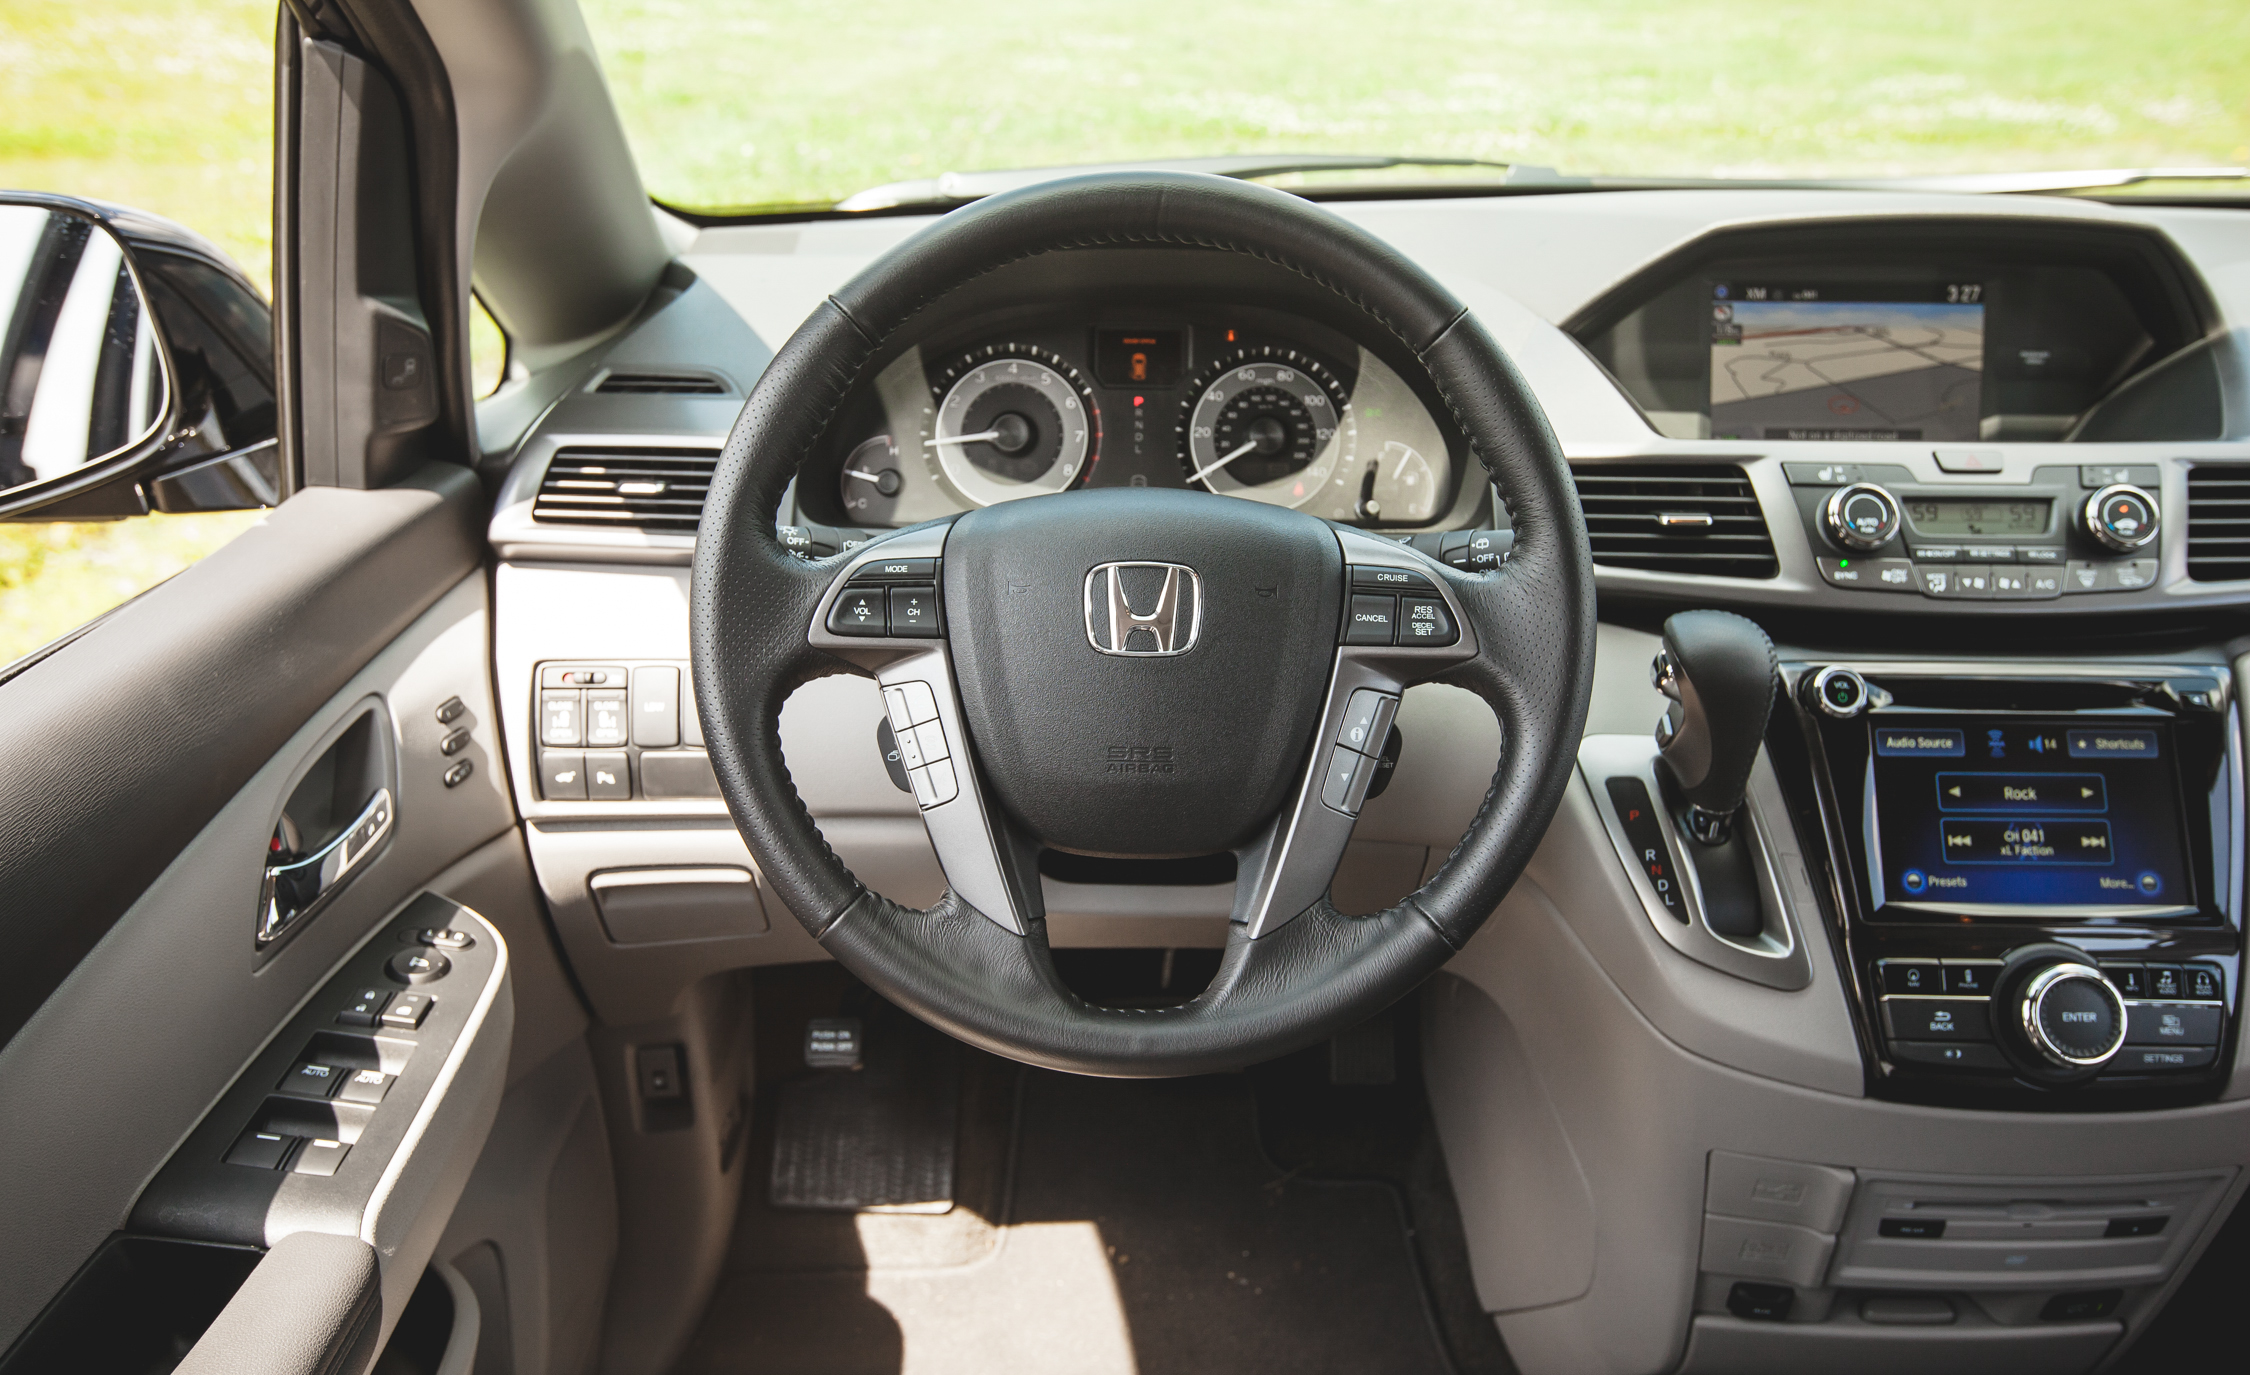 2014 Honda Odyssey Touring Elite Interior (View 11 of 19)